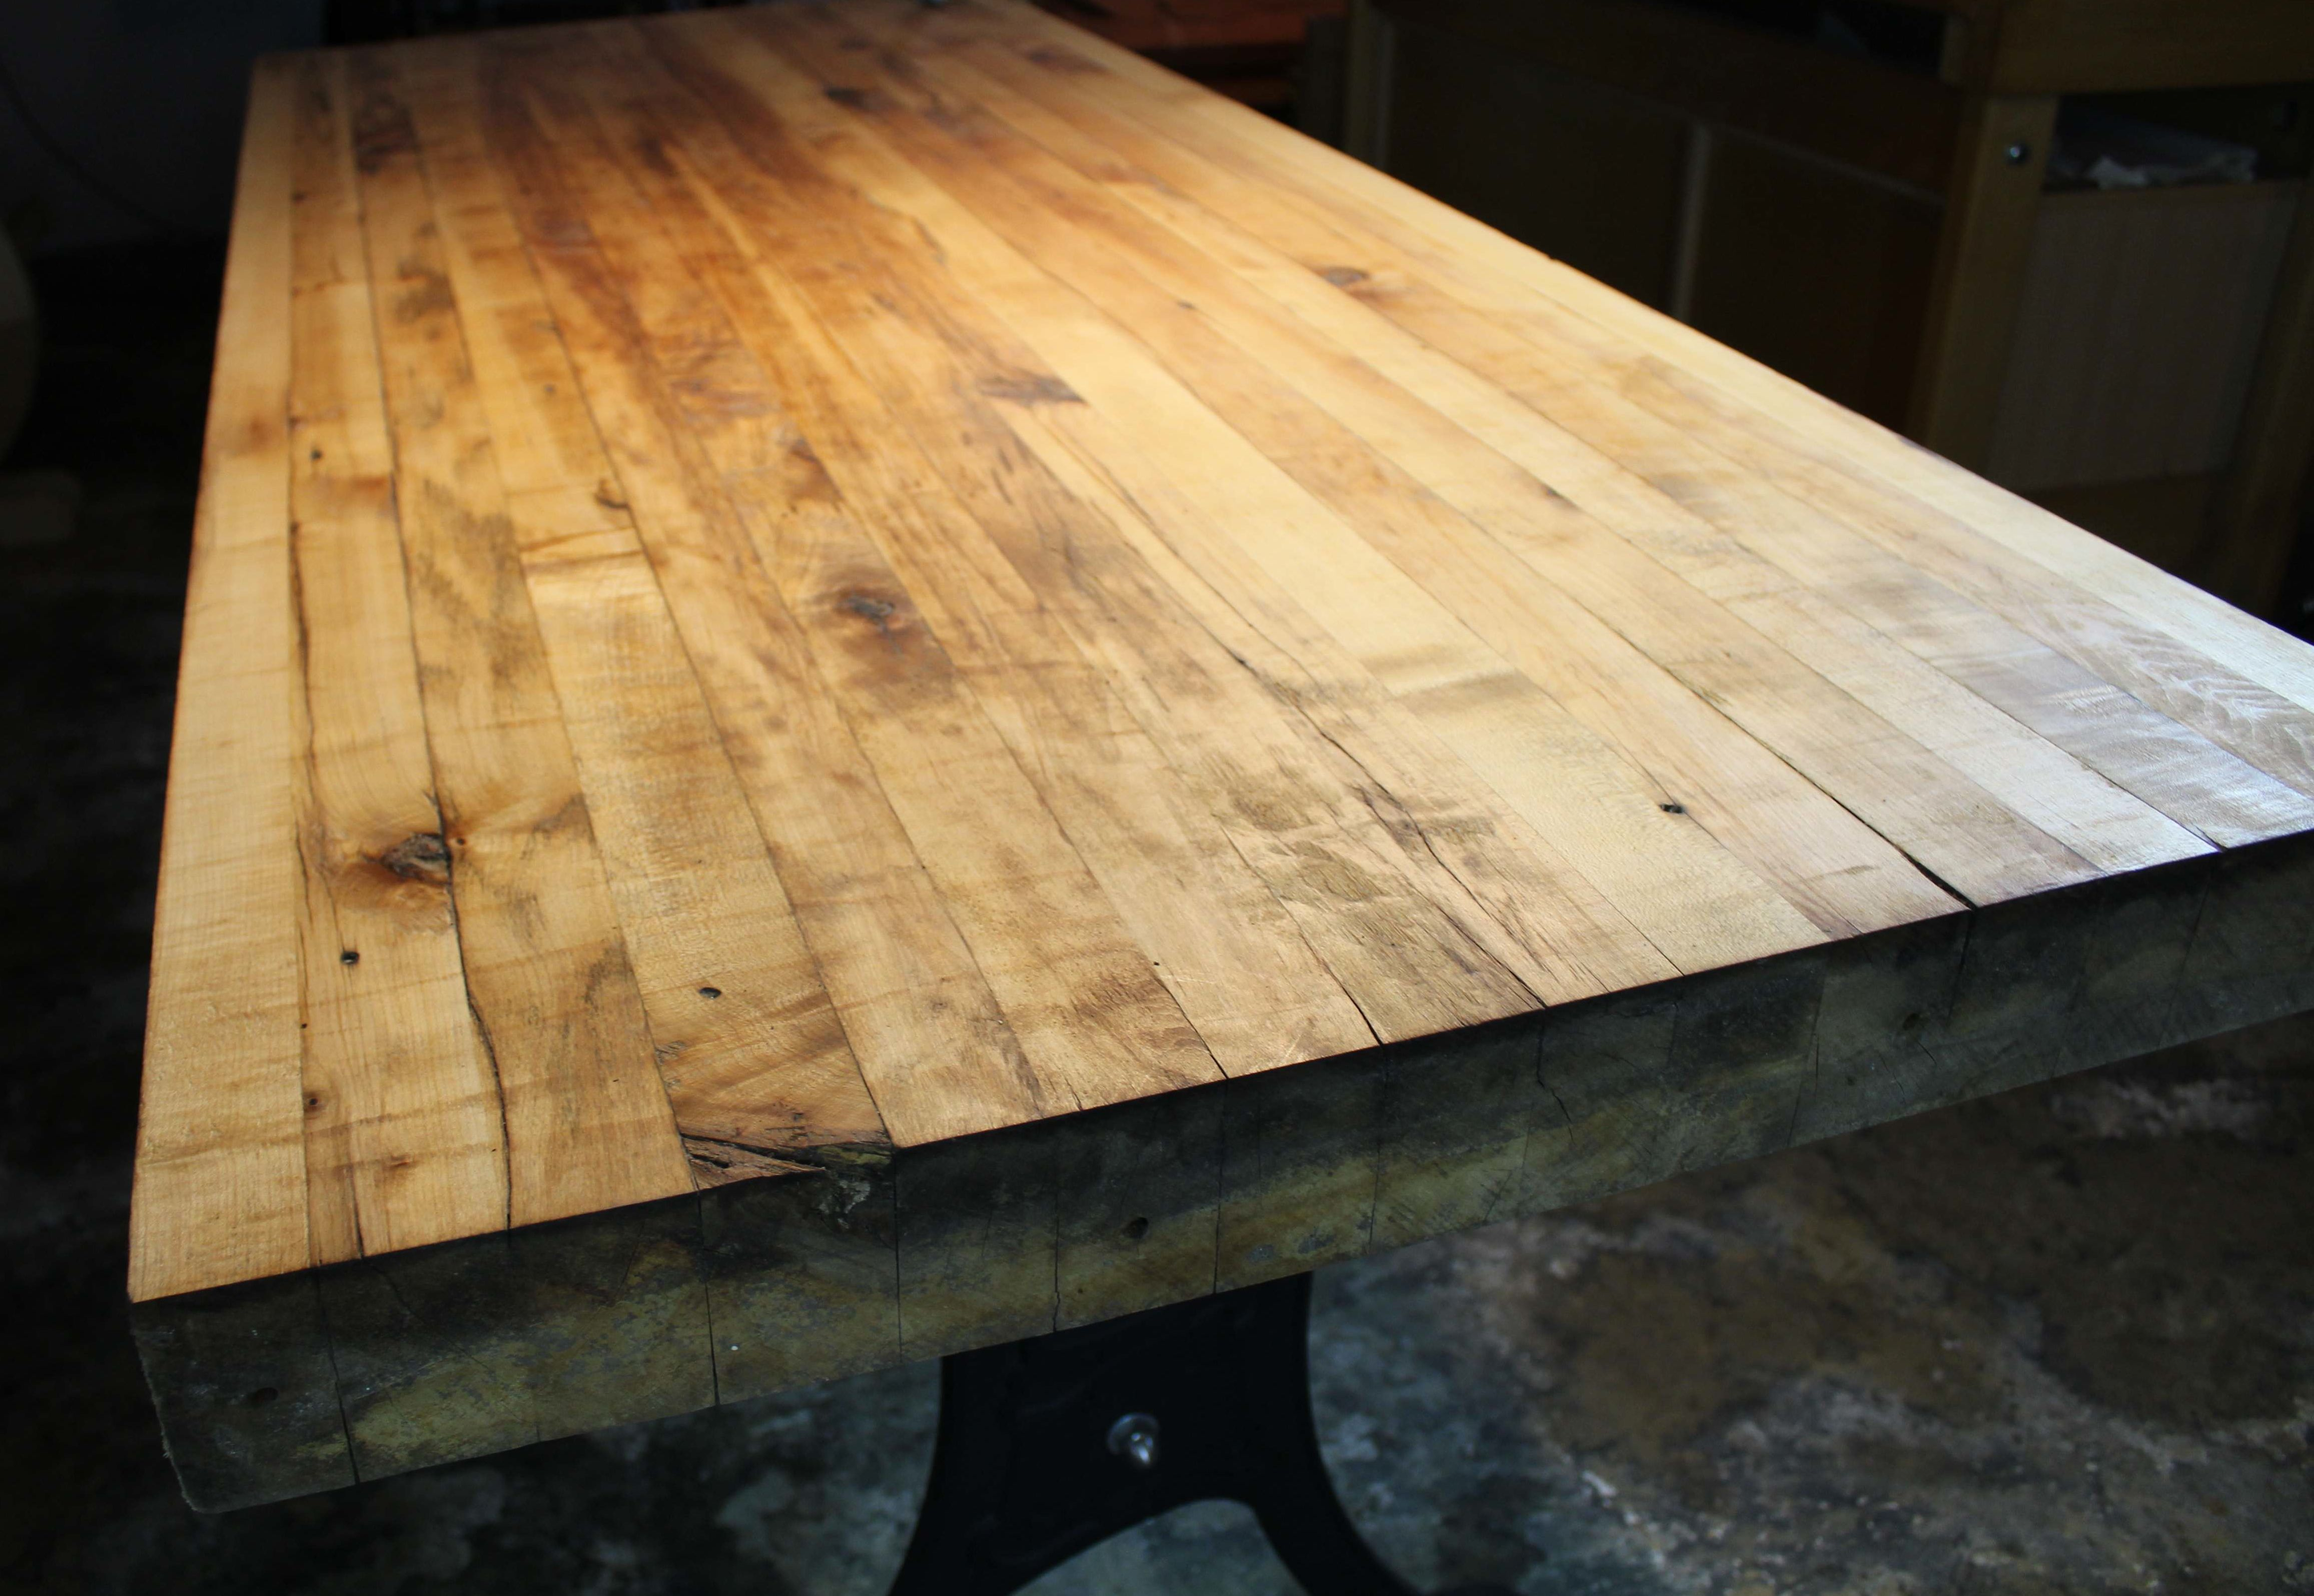 Episode 05 ~ Finishing the Table Top